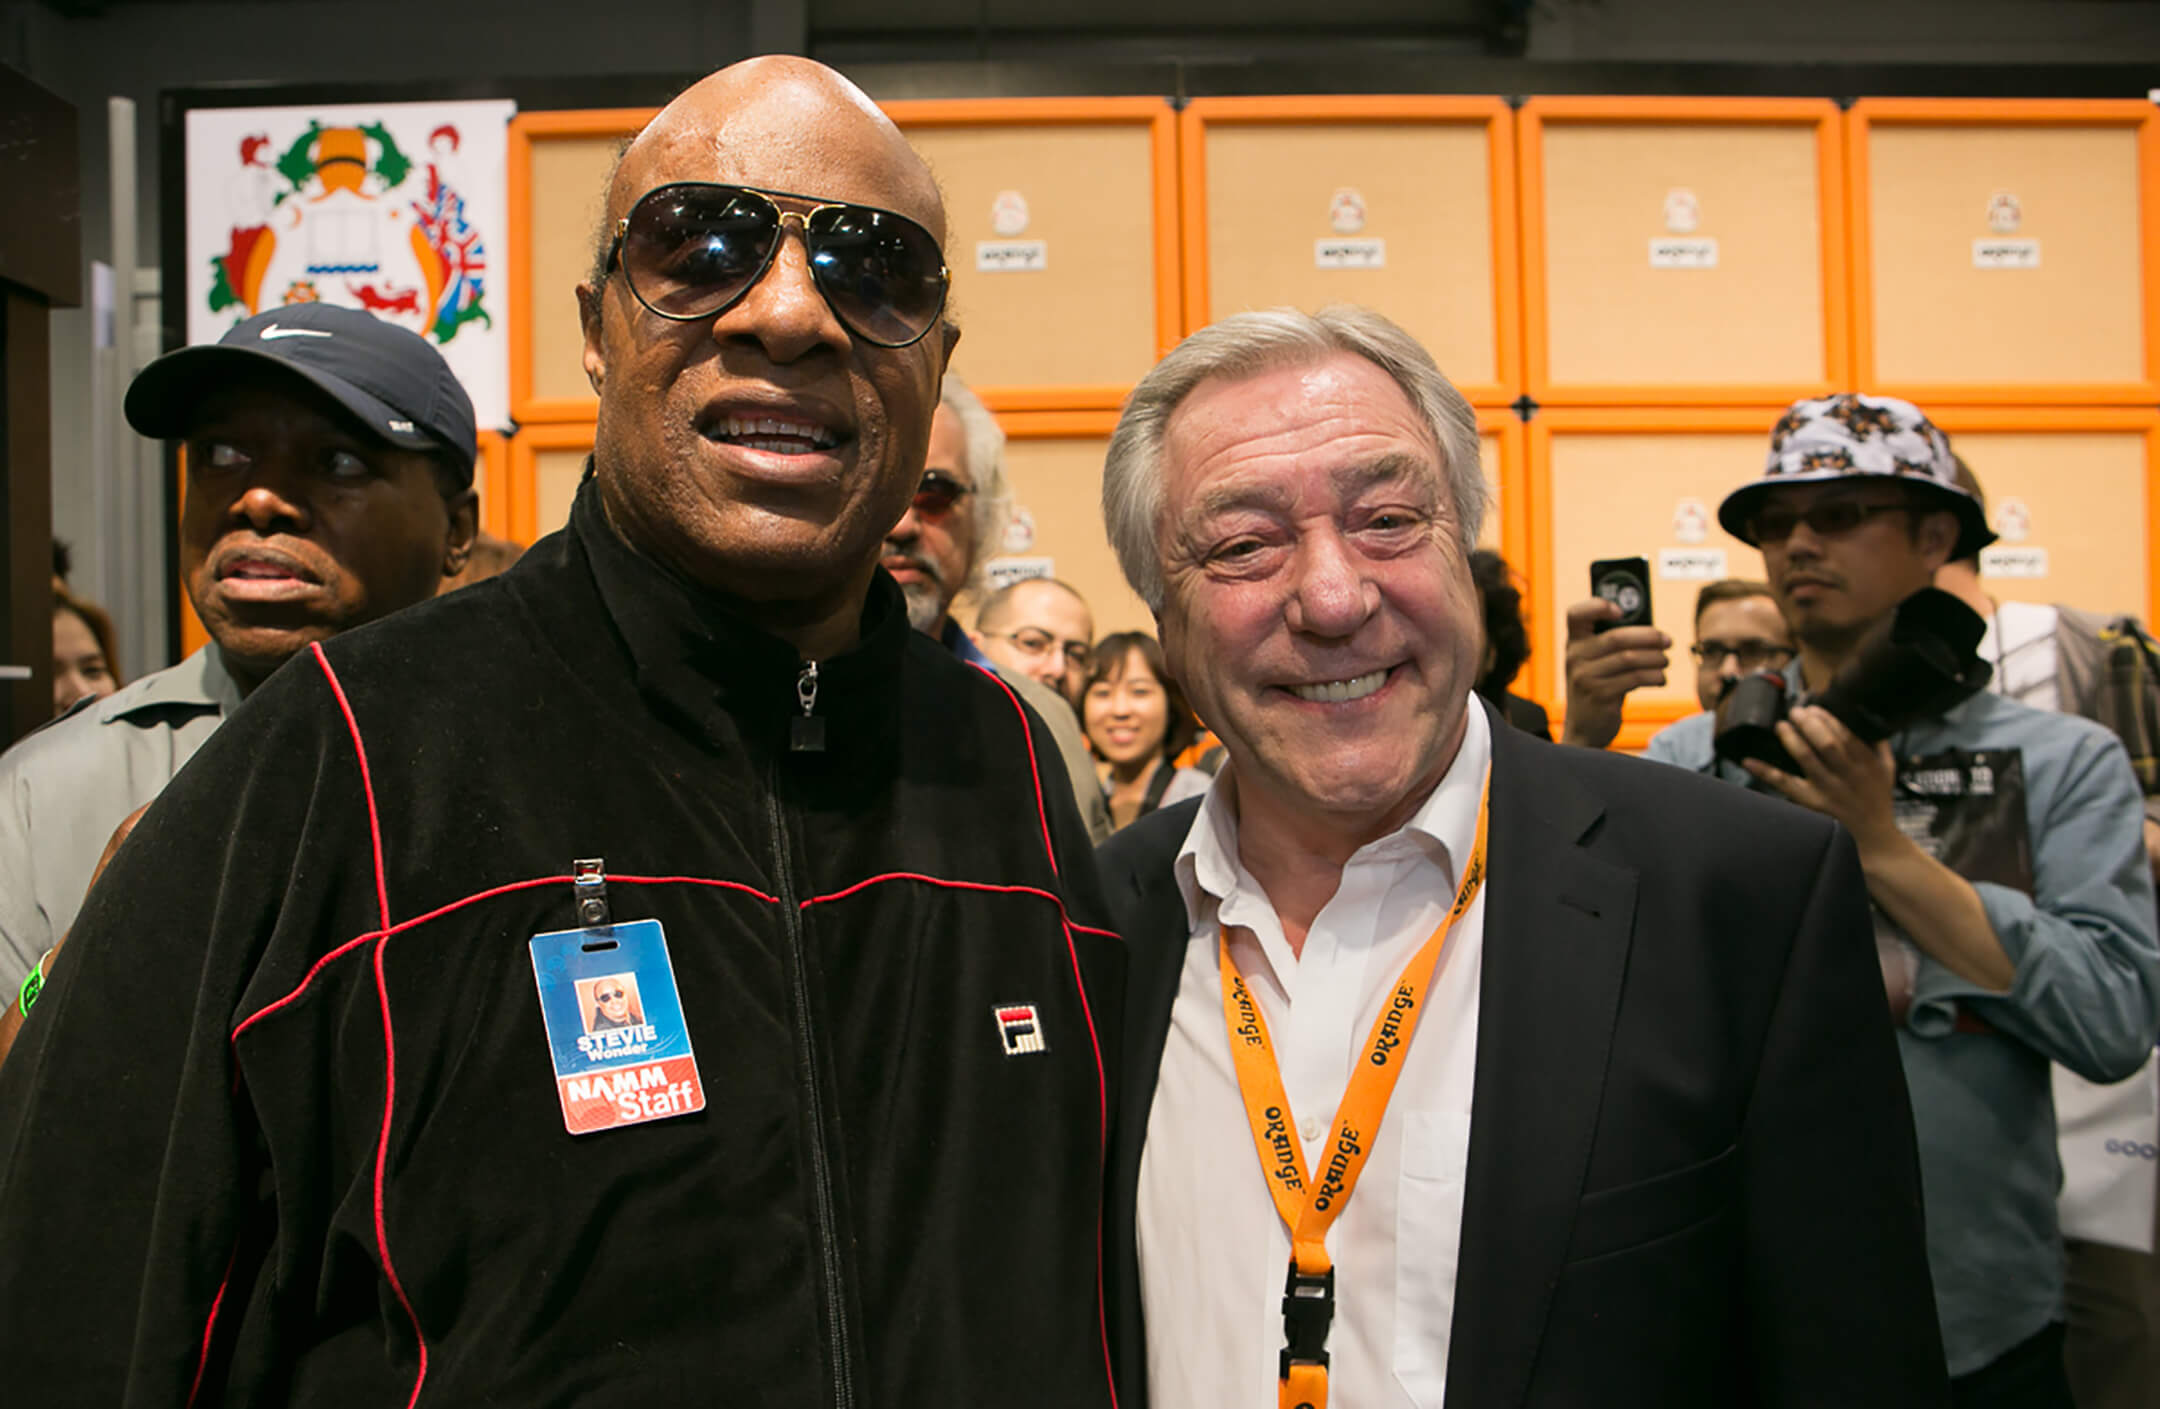 Cliff with Stevie Wonder at NAMM 2014